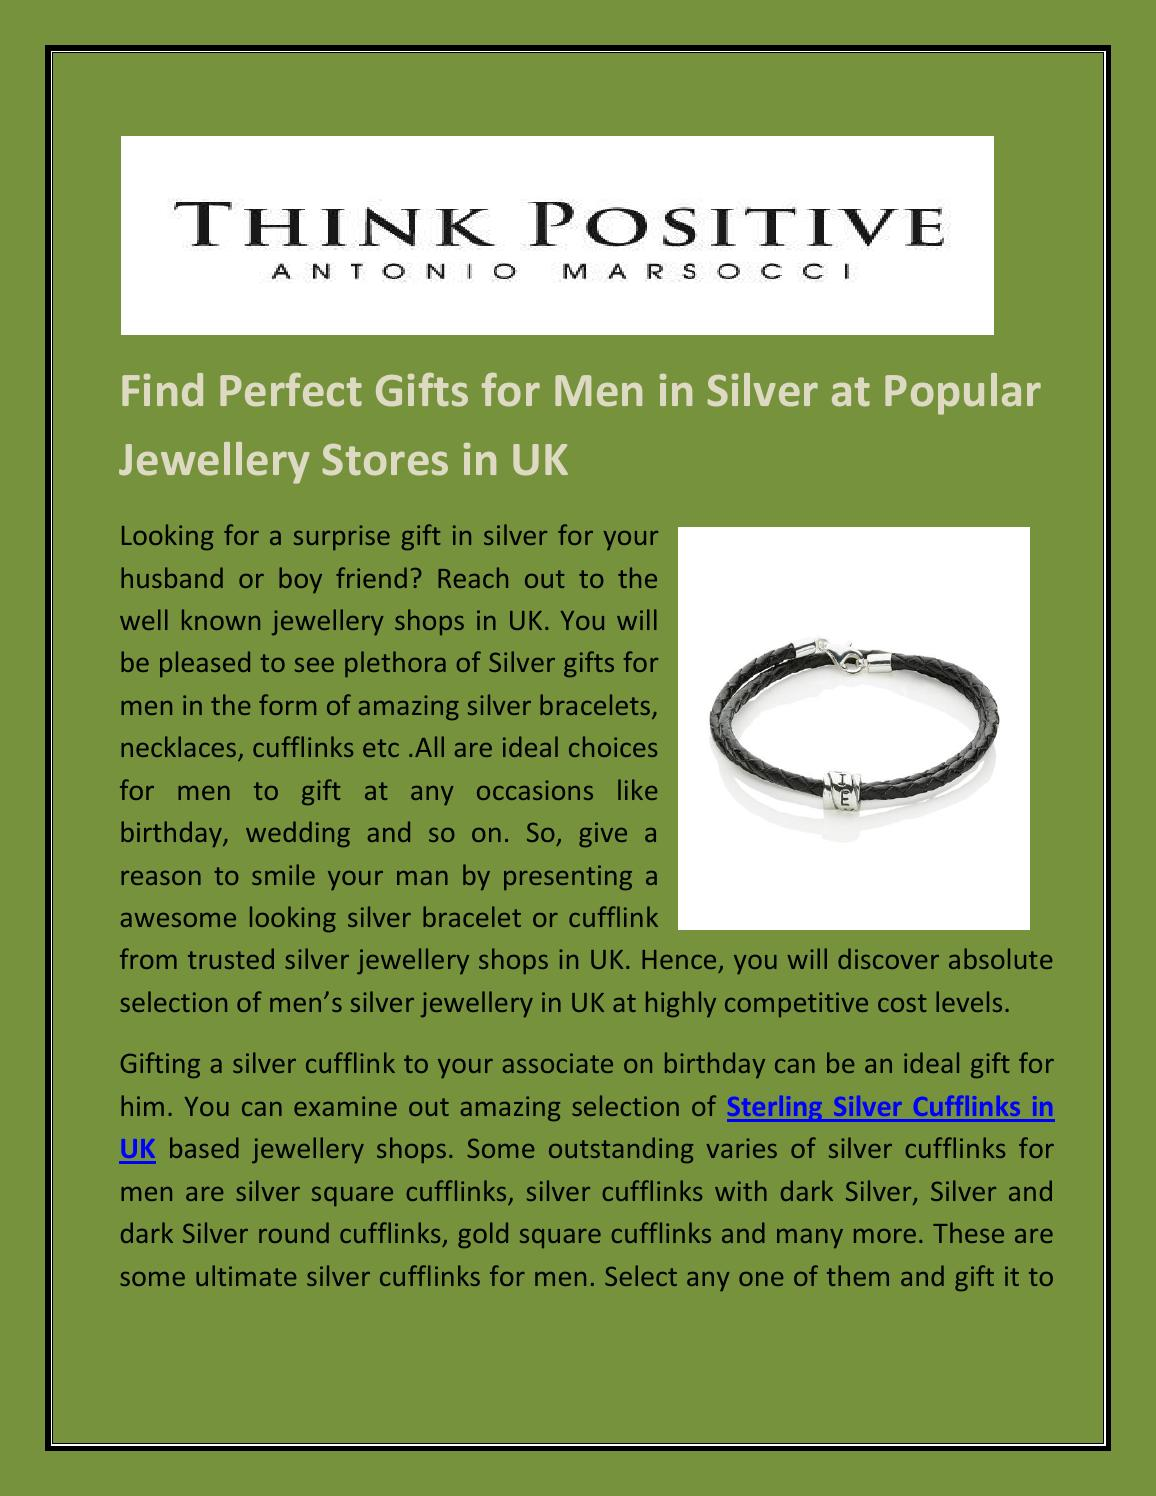 Find Perfect Gifts For Men In Silver At Popular Jewellery Stores In